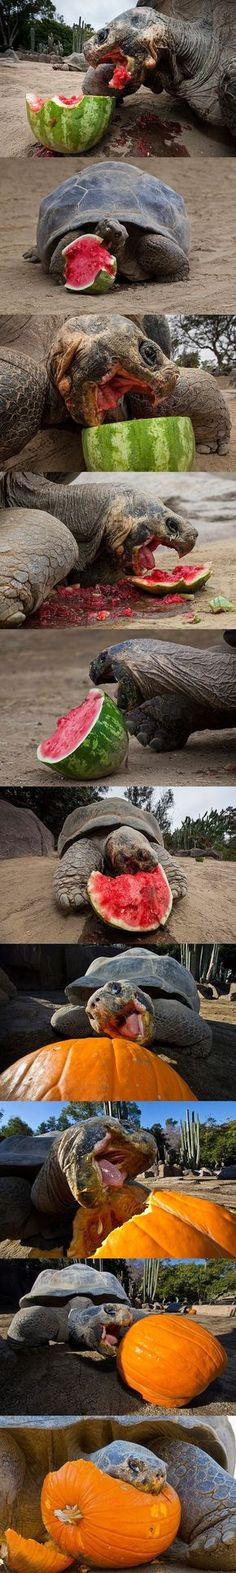 10 photos of Galapagos tortoises chowing down. Just because.